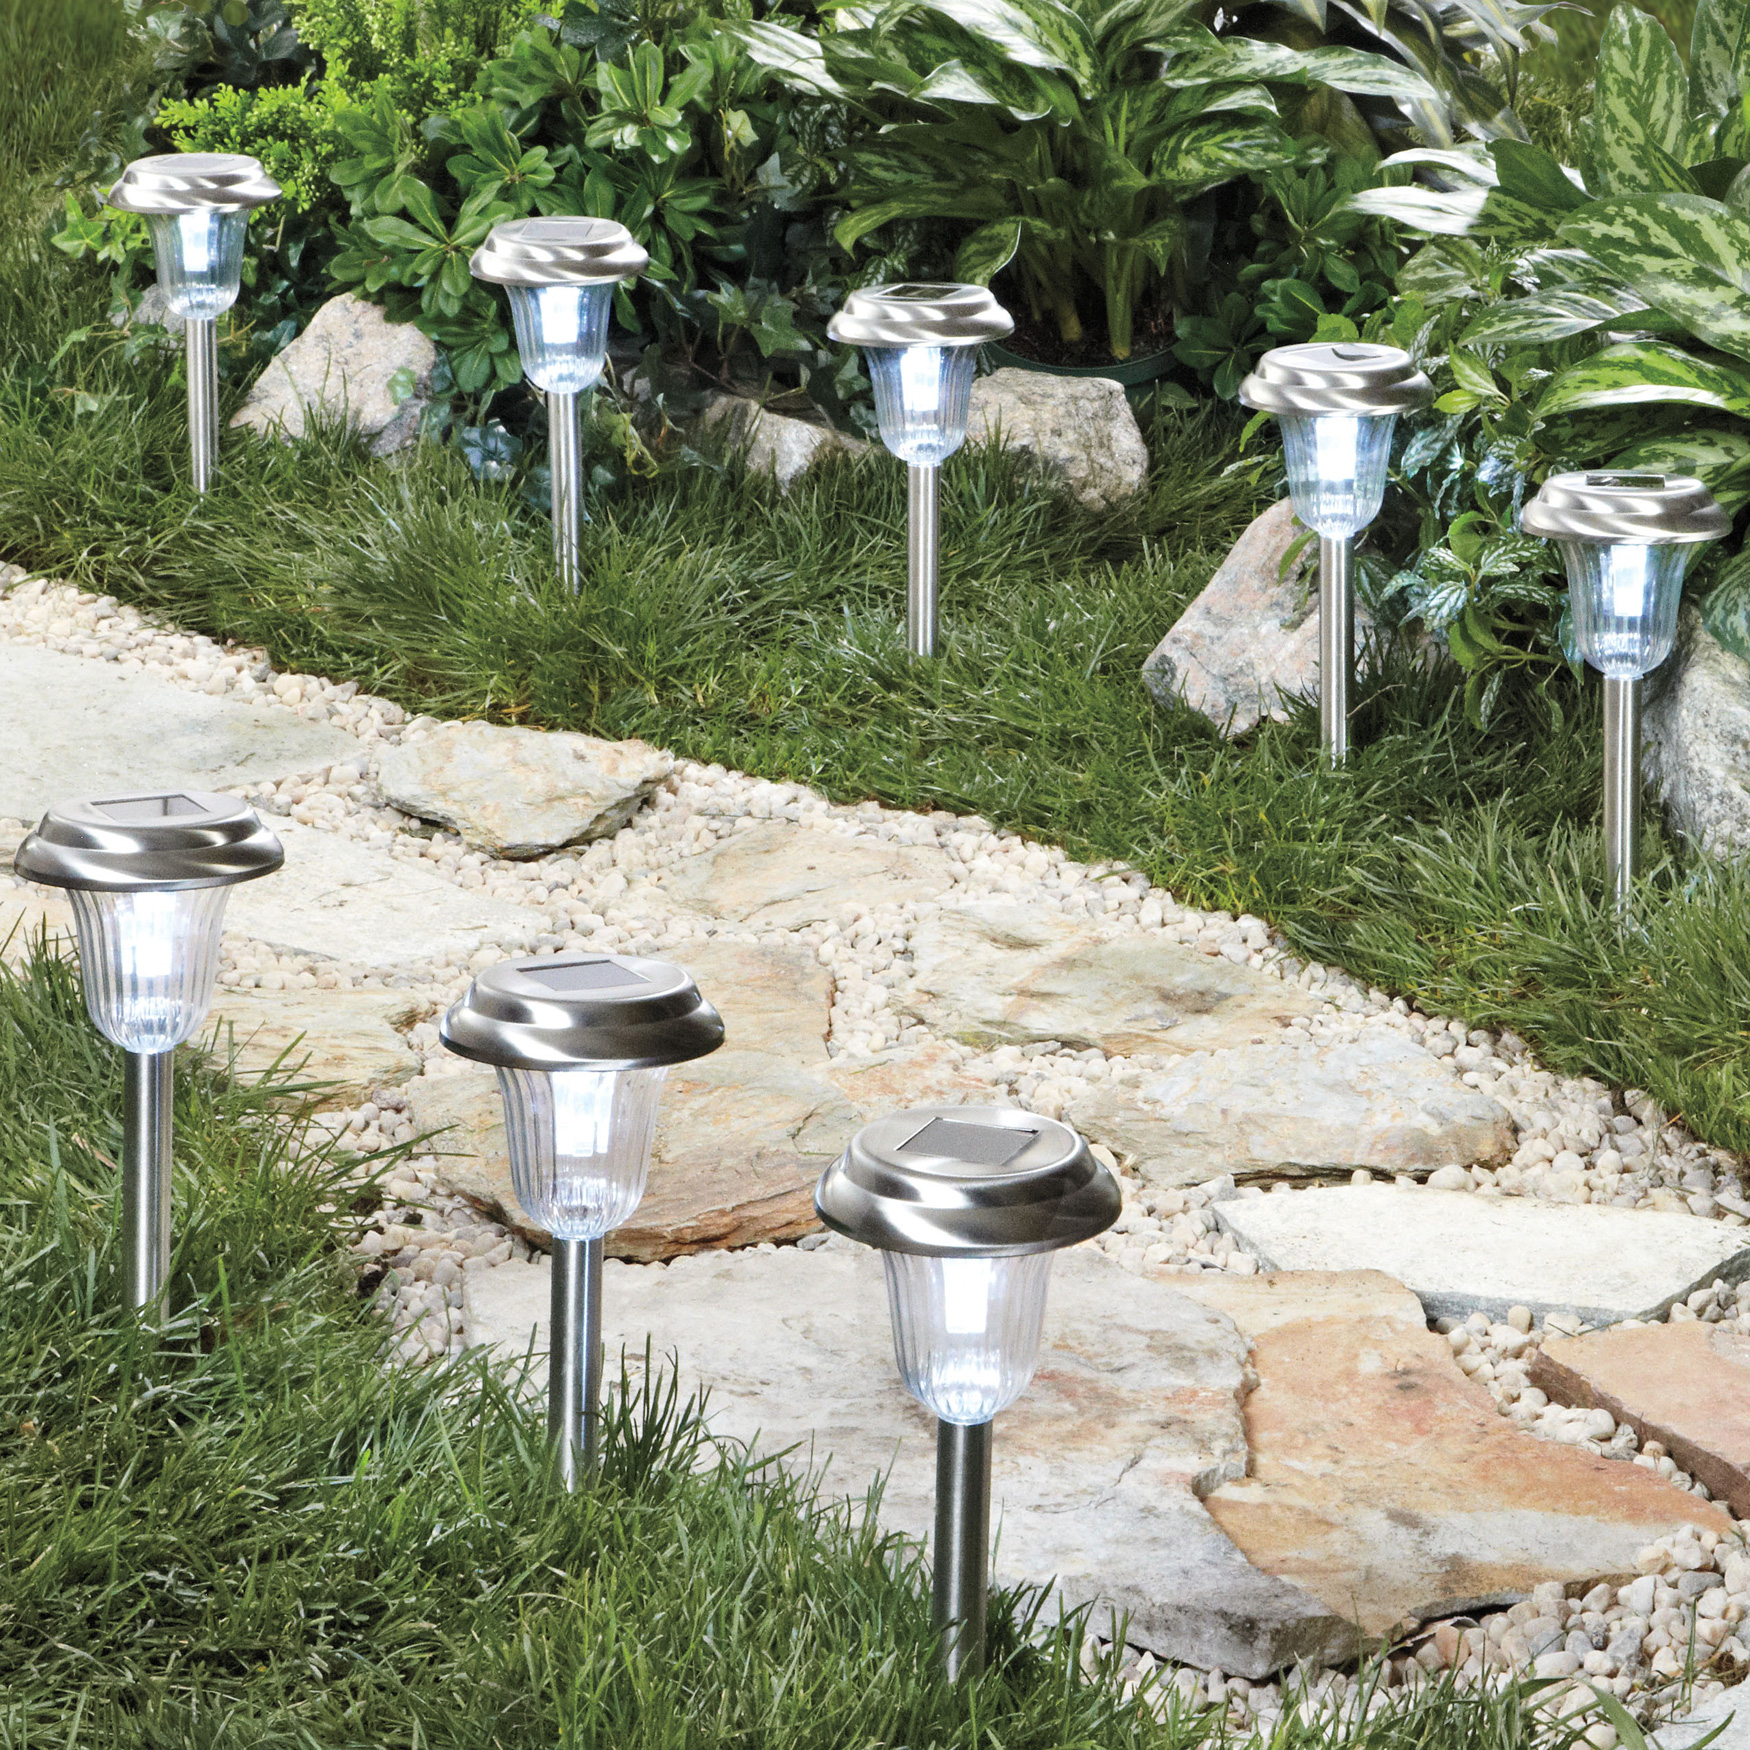 Stainless Steel Solar Pathway Lights, Set of 8, STAINLESS STEEL